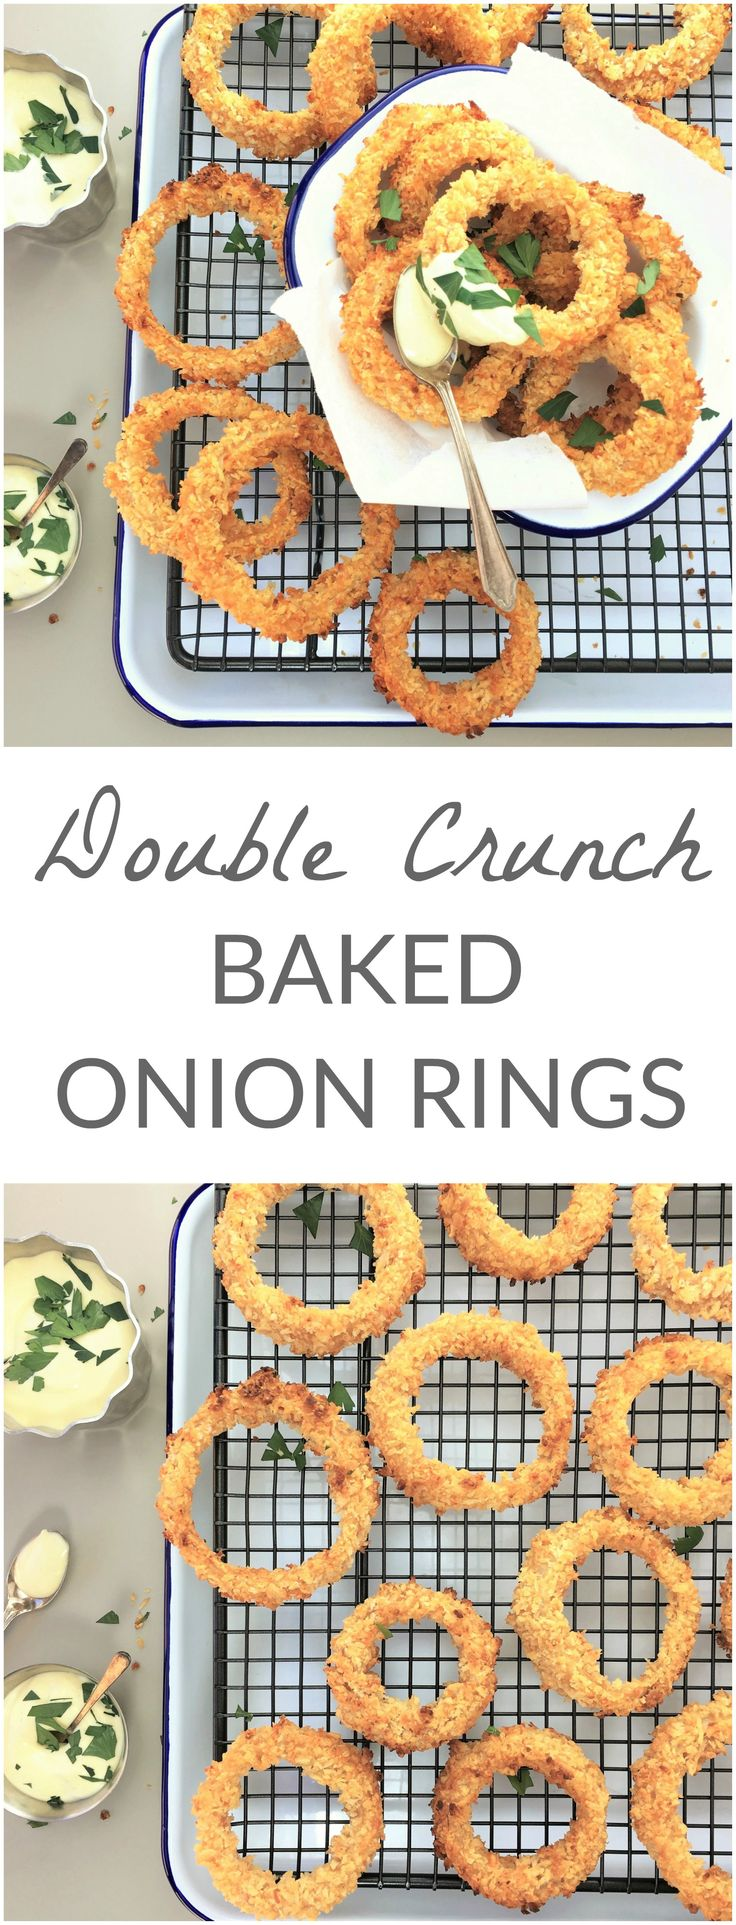 Double crunch baked onion rings | oven baked | crispy | panko | crunchy